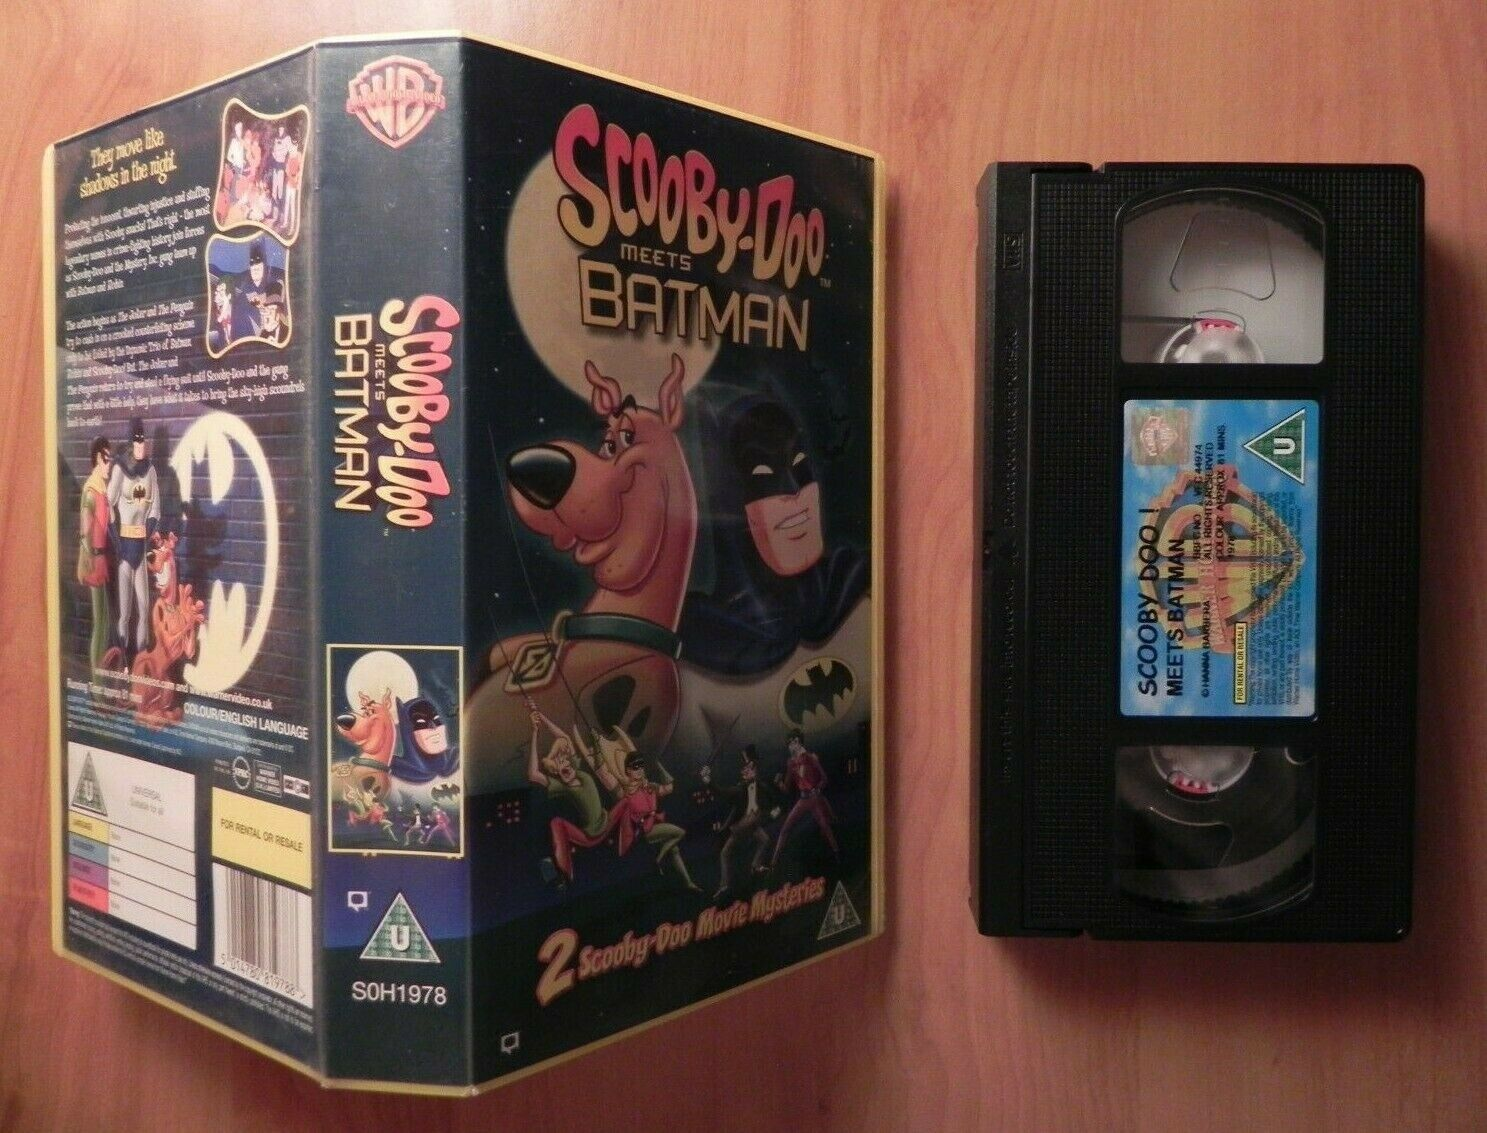 Scooby-Doo Meets Batman (2002) - Mystery Animation - Children's - Pal VHS